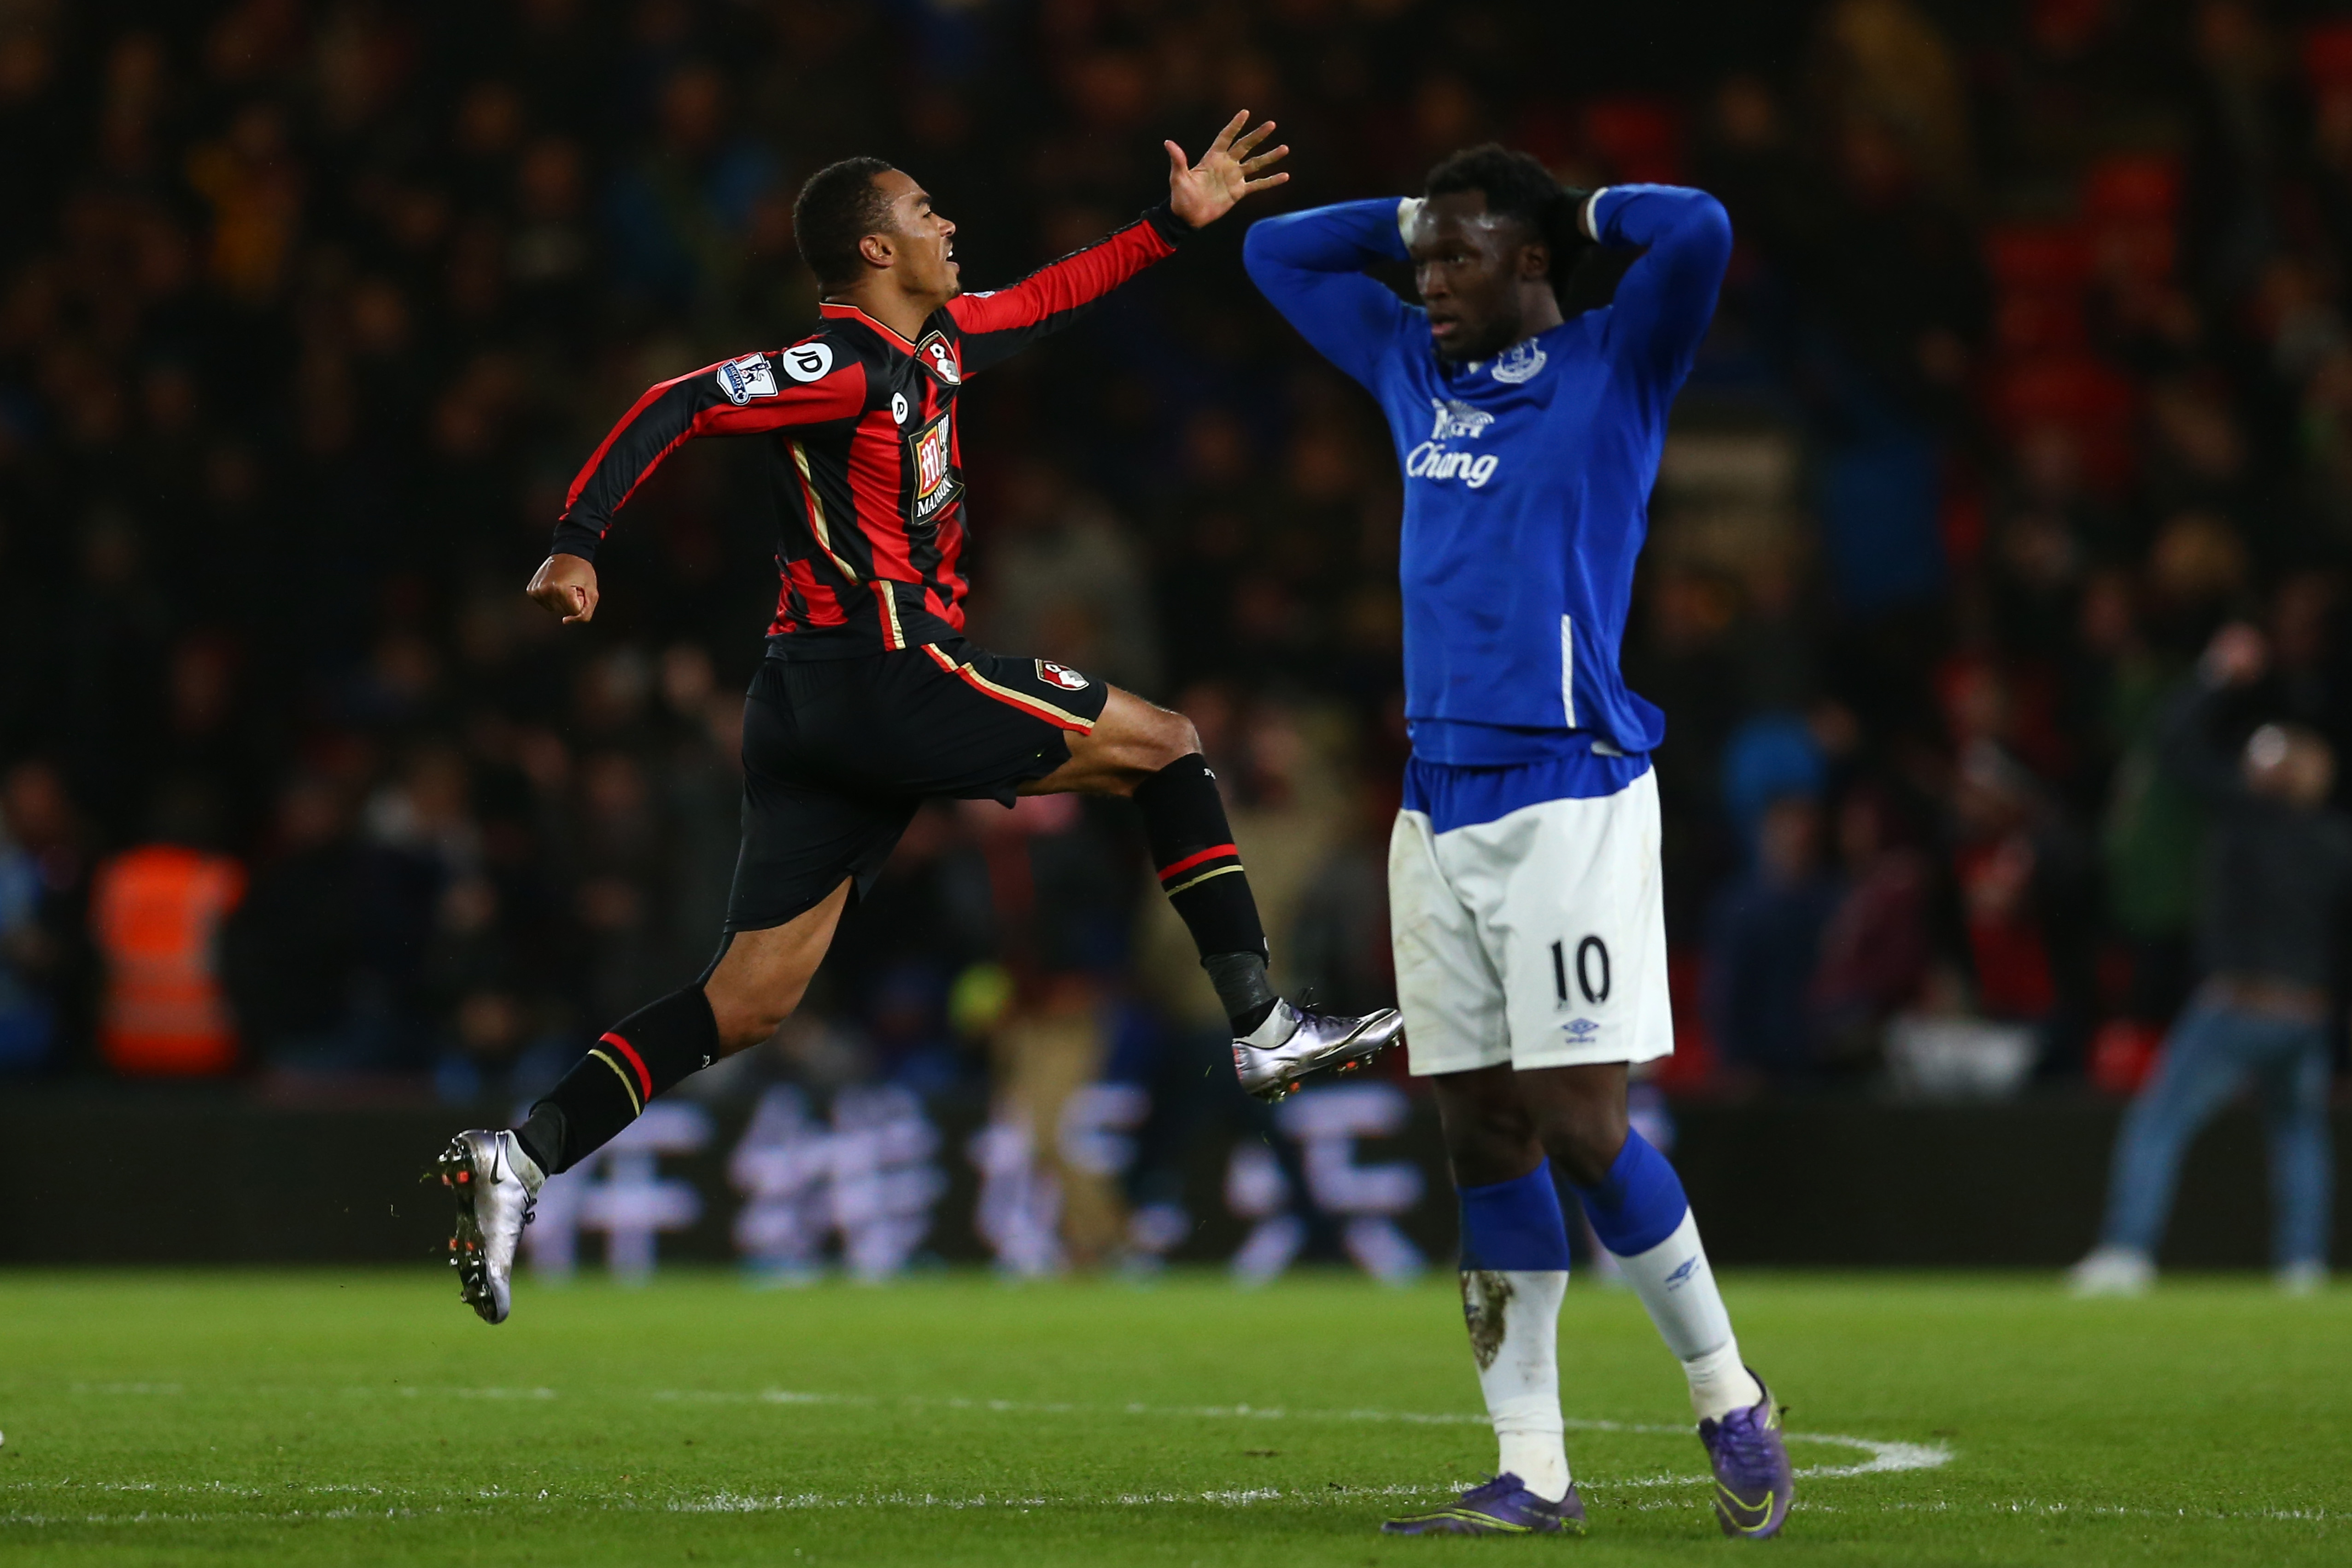 BOURNEMOUTH, ENGLAND - NOVEMBER 28: Junior Stanislas (1st R) of Bournemouth celebrates scoring his team's third goal with his team mates during the Barclays Premier League match between A.F.C. Bournemouth and Everton at Vitality Stadium on November 28, 2015 in Bournemouth, England. (Photo by Steve Bardens/Getty Images)